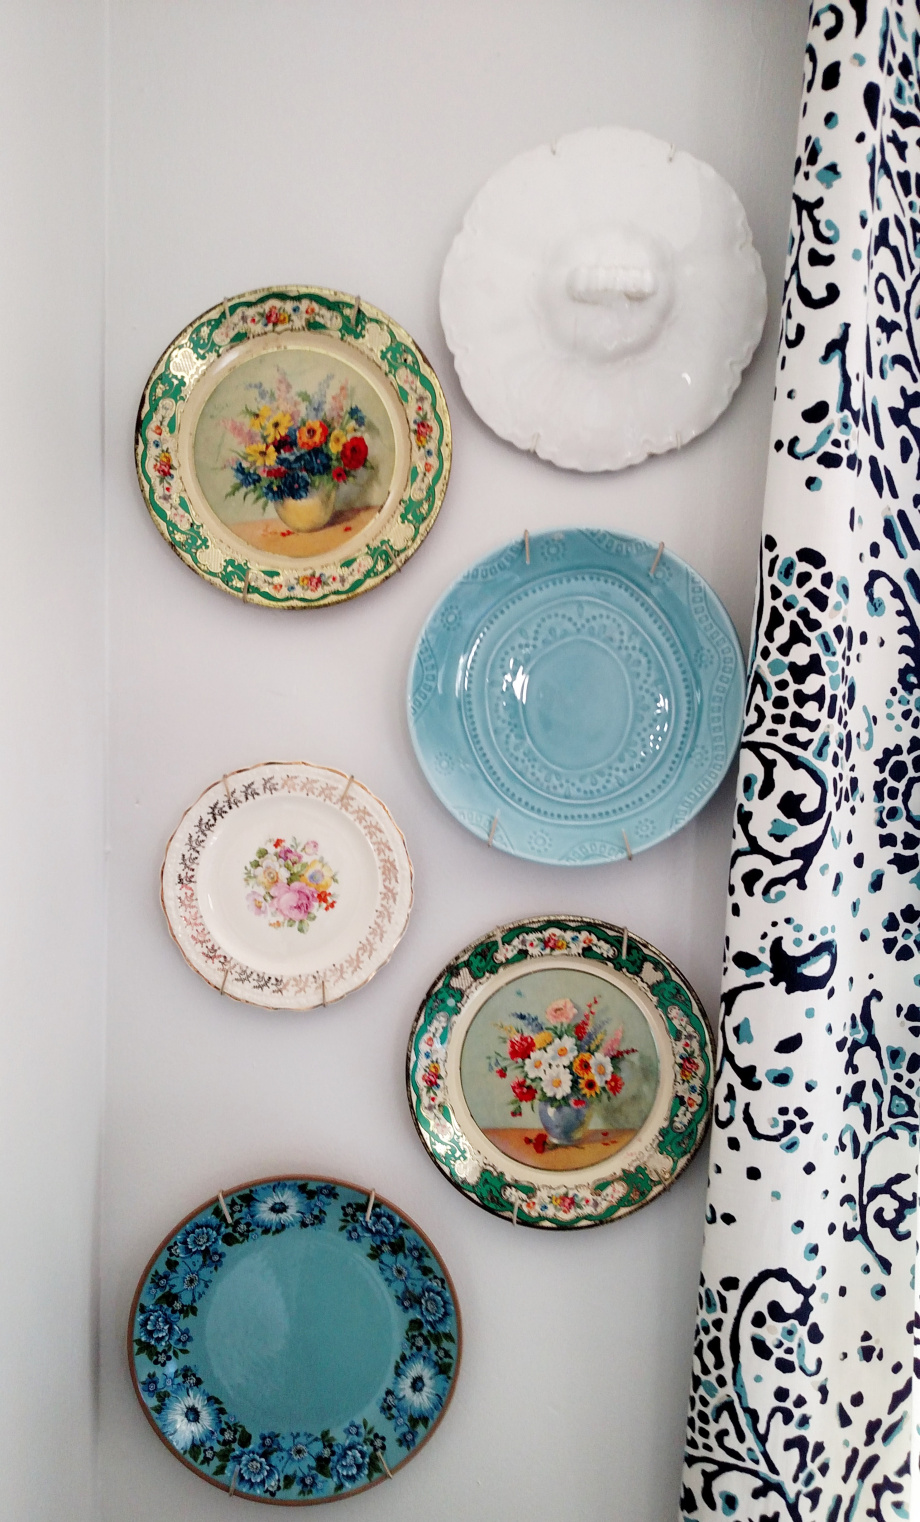 waste-not-wednesday-week-23-how-to-decorate-a-wall-with-vintage-plates-from-lets-create-events